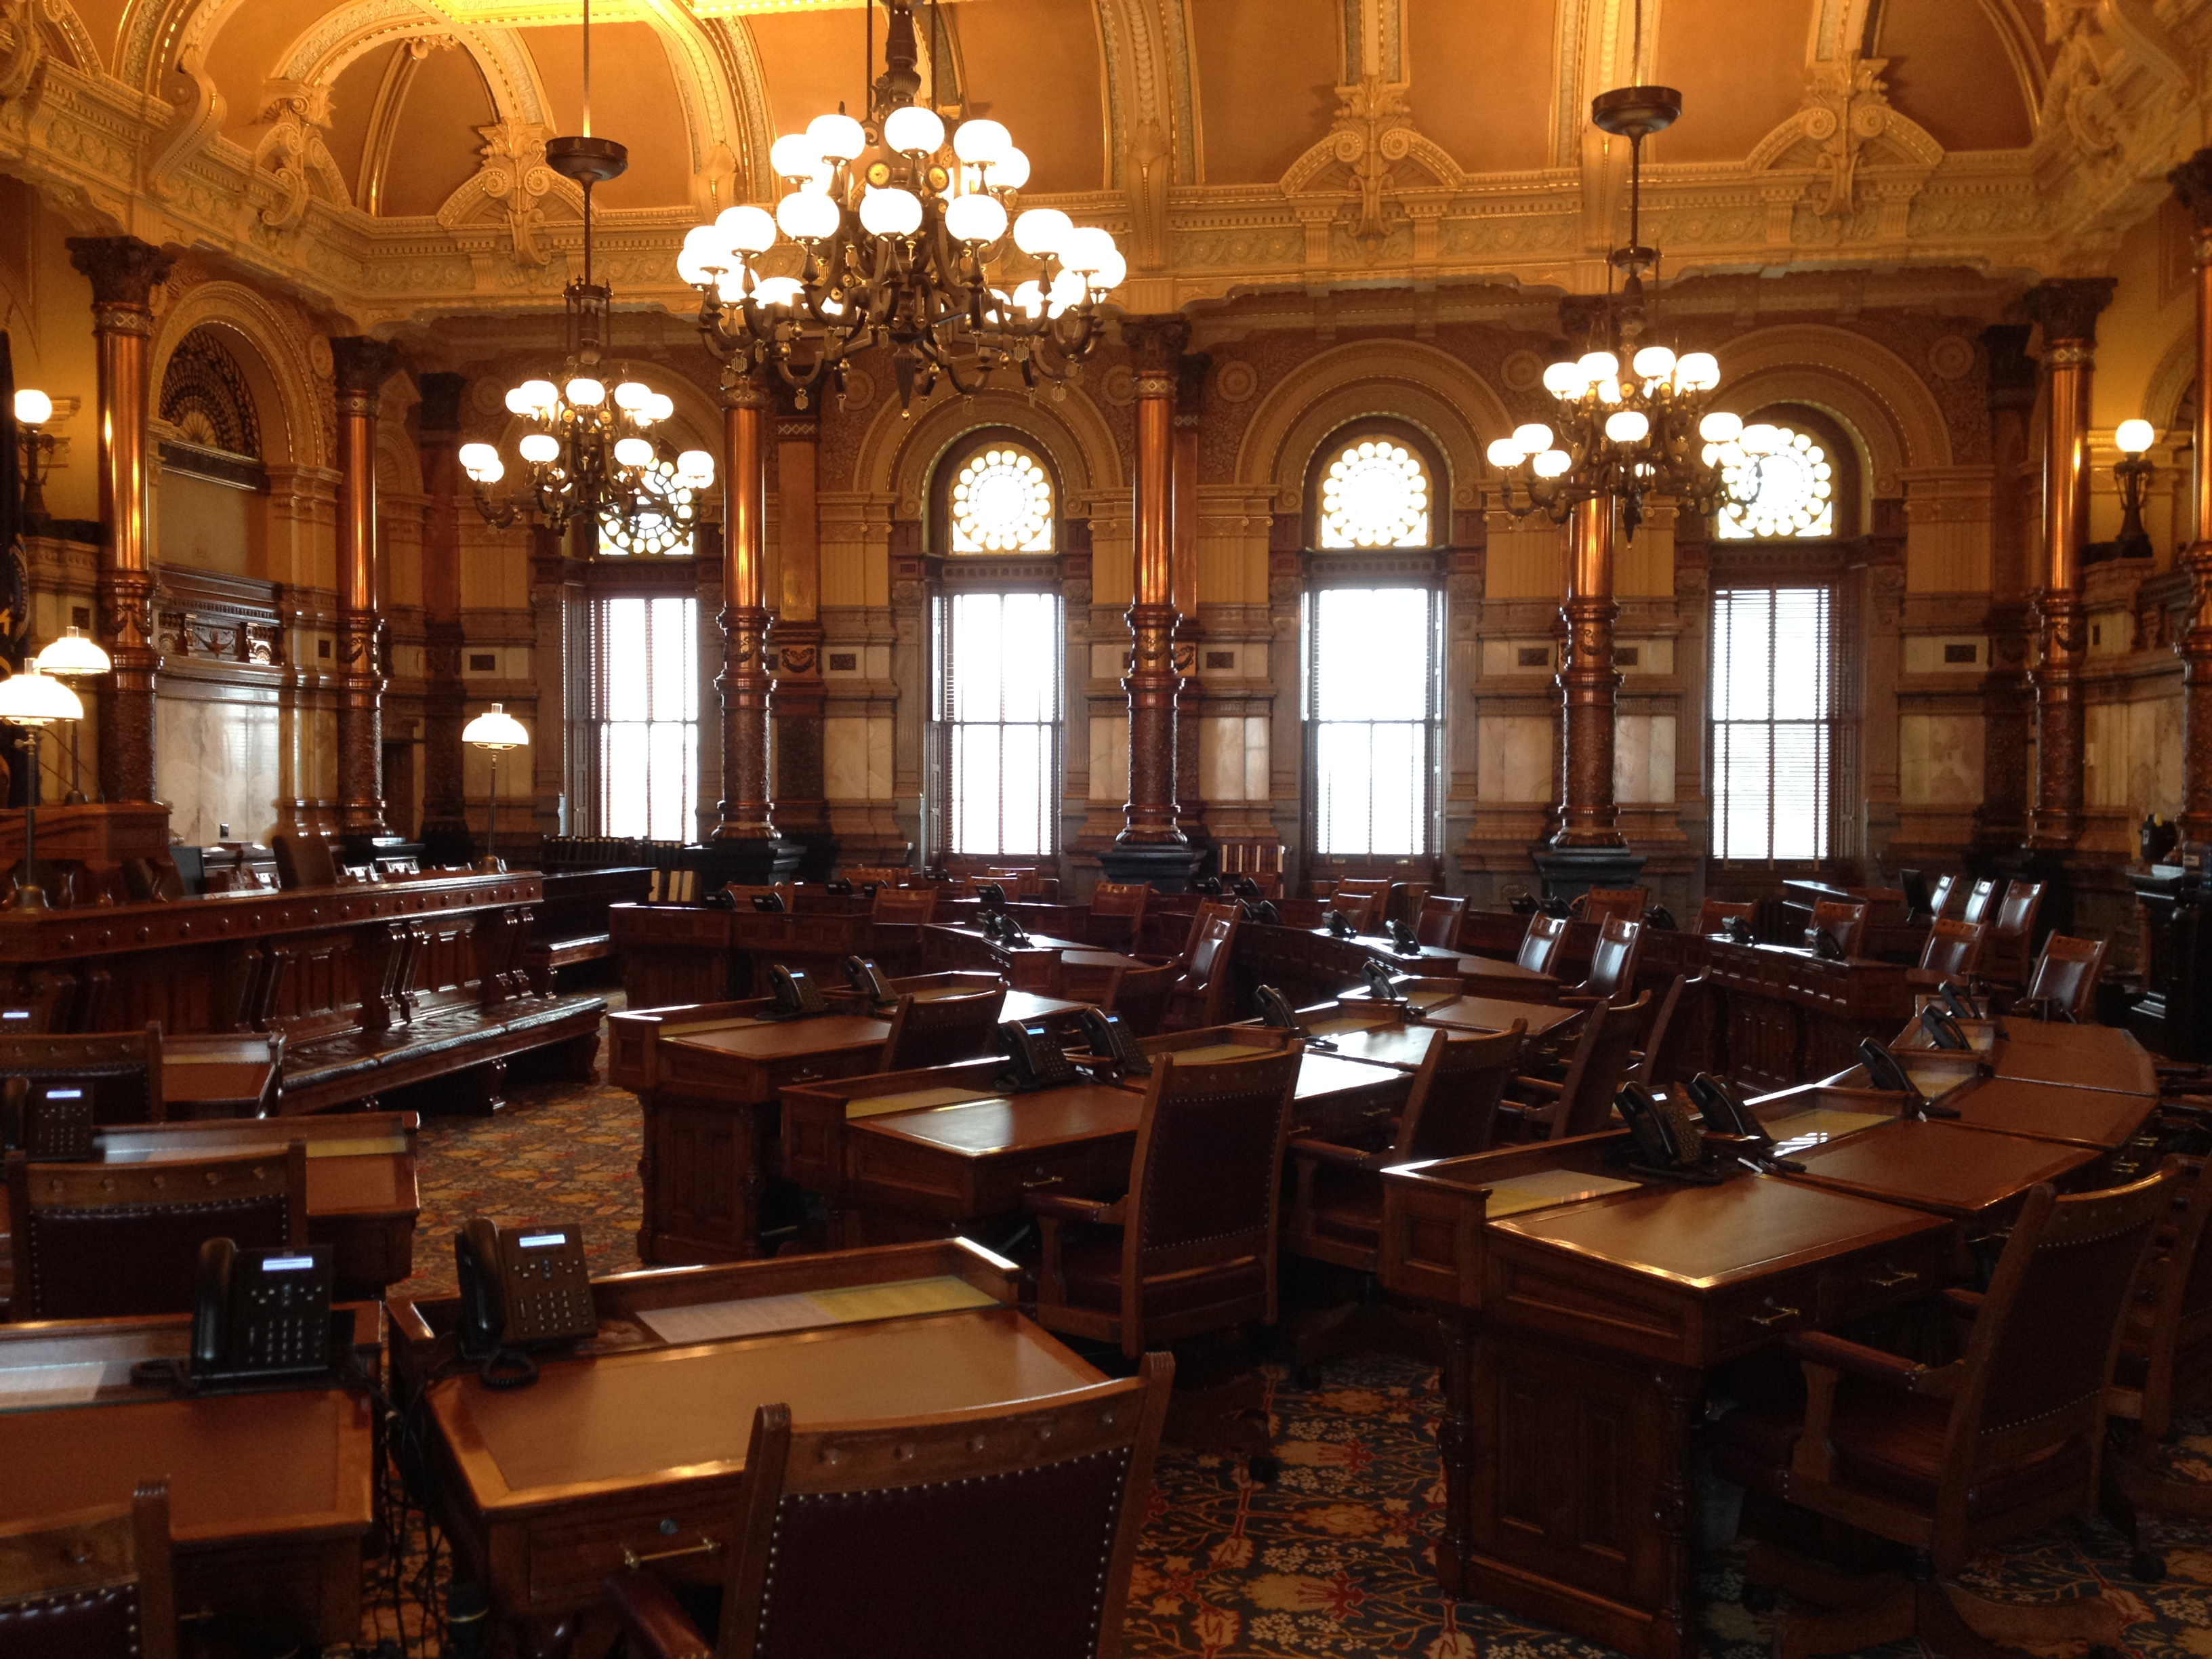 The Kansas Senate chamber, which is located on the third floor (like the House chamber) is stately and ornate. (Photo by J. Schafer)